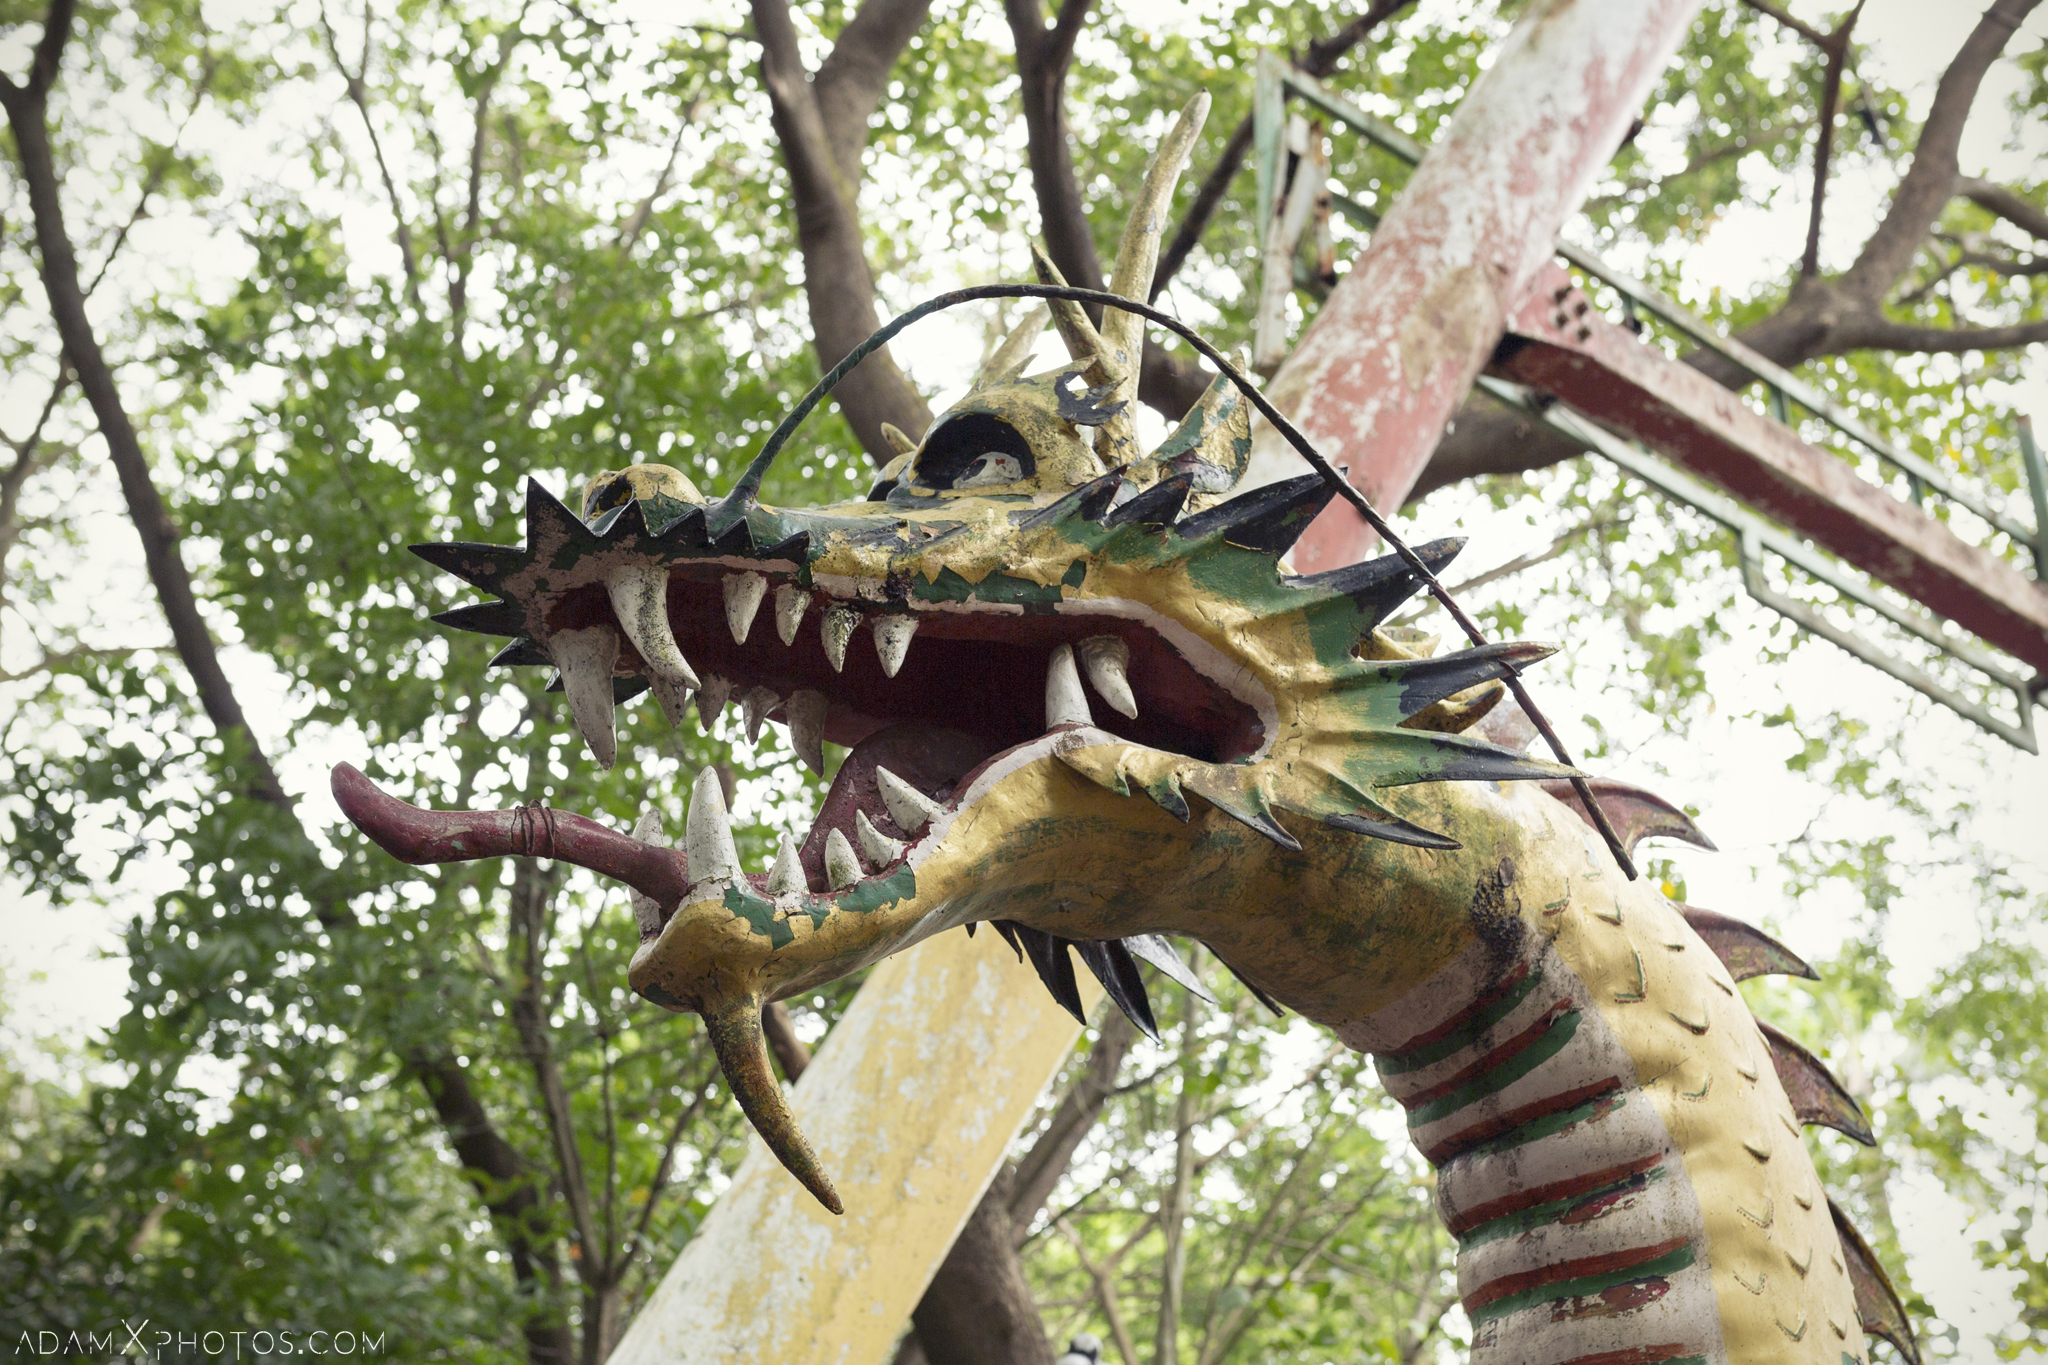 Dragon Happy World Theme Park Amusement Park Fairground Myanmar Burma Yangon Rangoon Urbex Adam X Urban Exploration Access 2016 Abandoned decay lost forgotten derelict location creepy haunting eerie